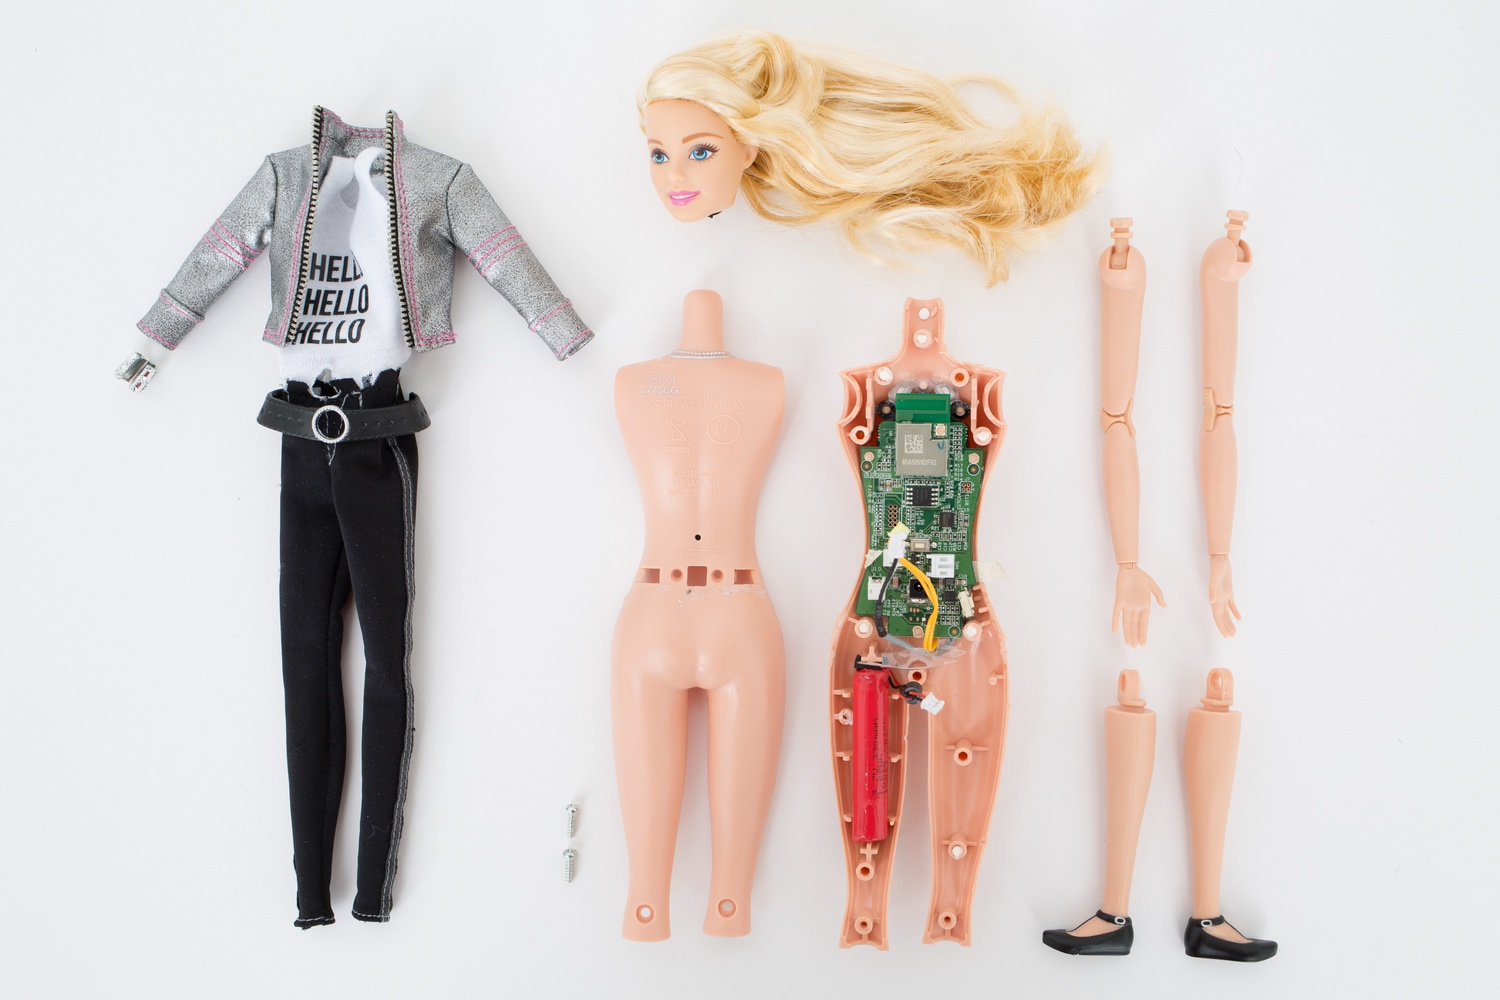 #128. IoT Barbie adás